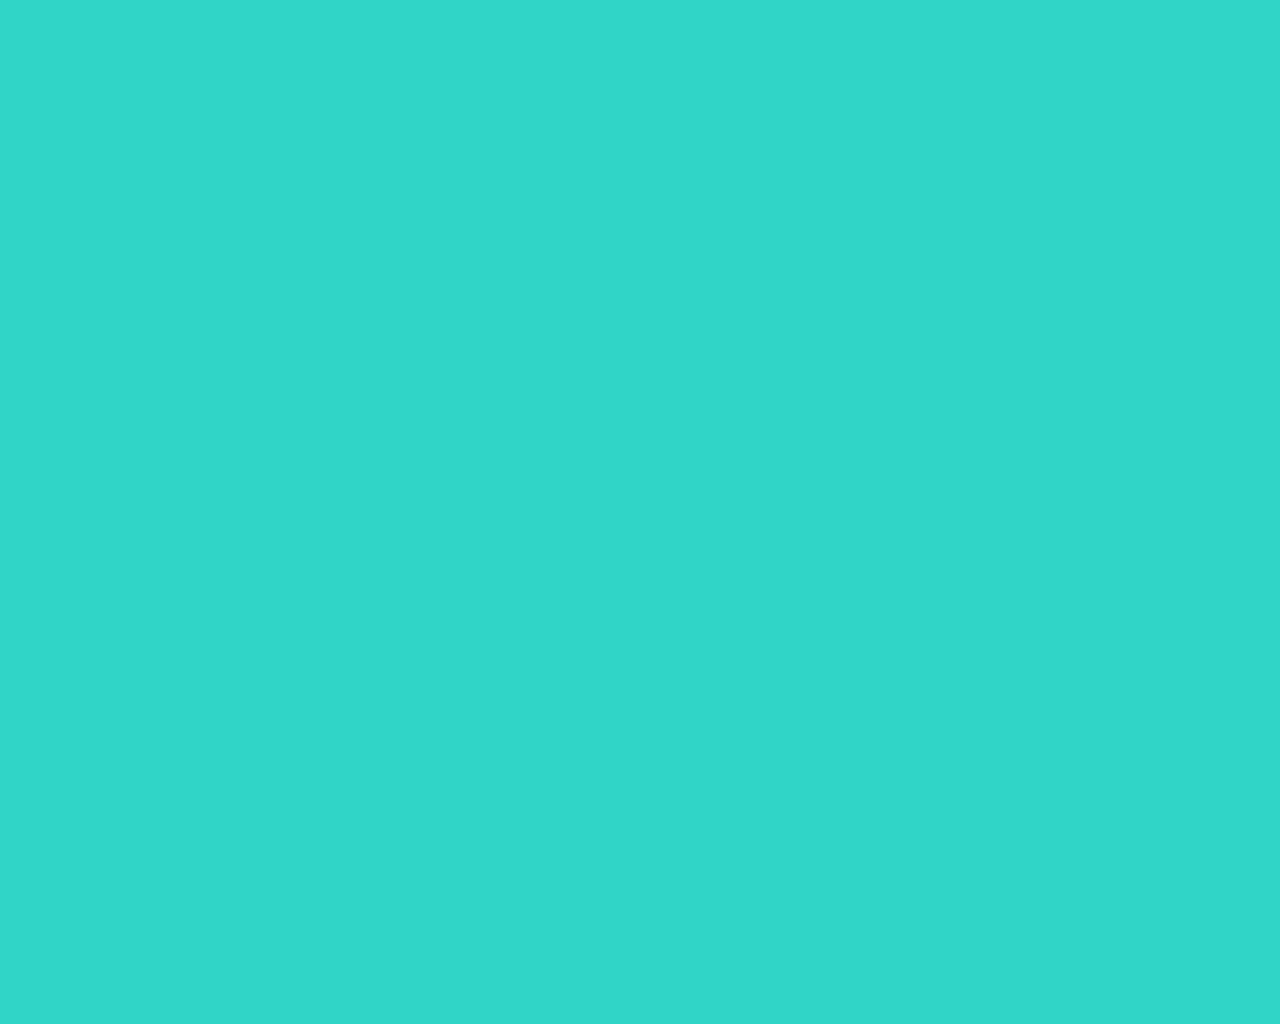 1280x1024 Turquoise Solid Color Background